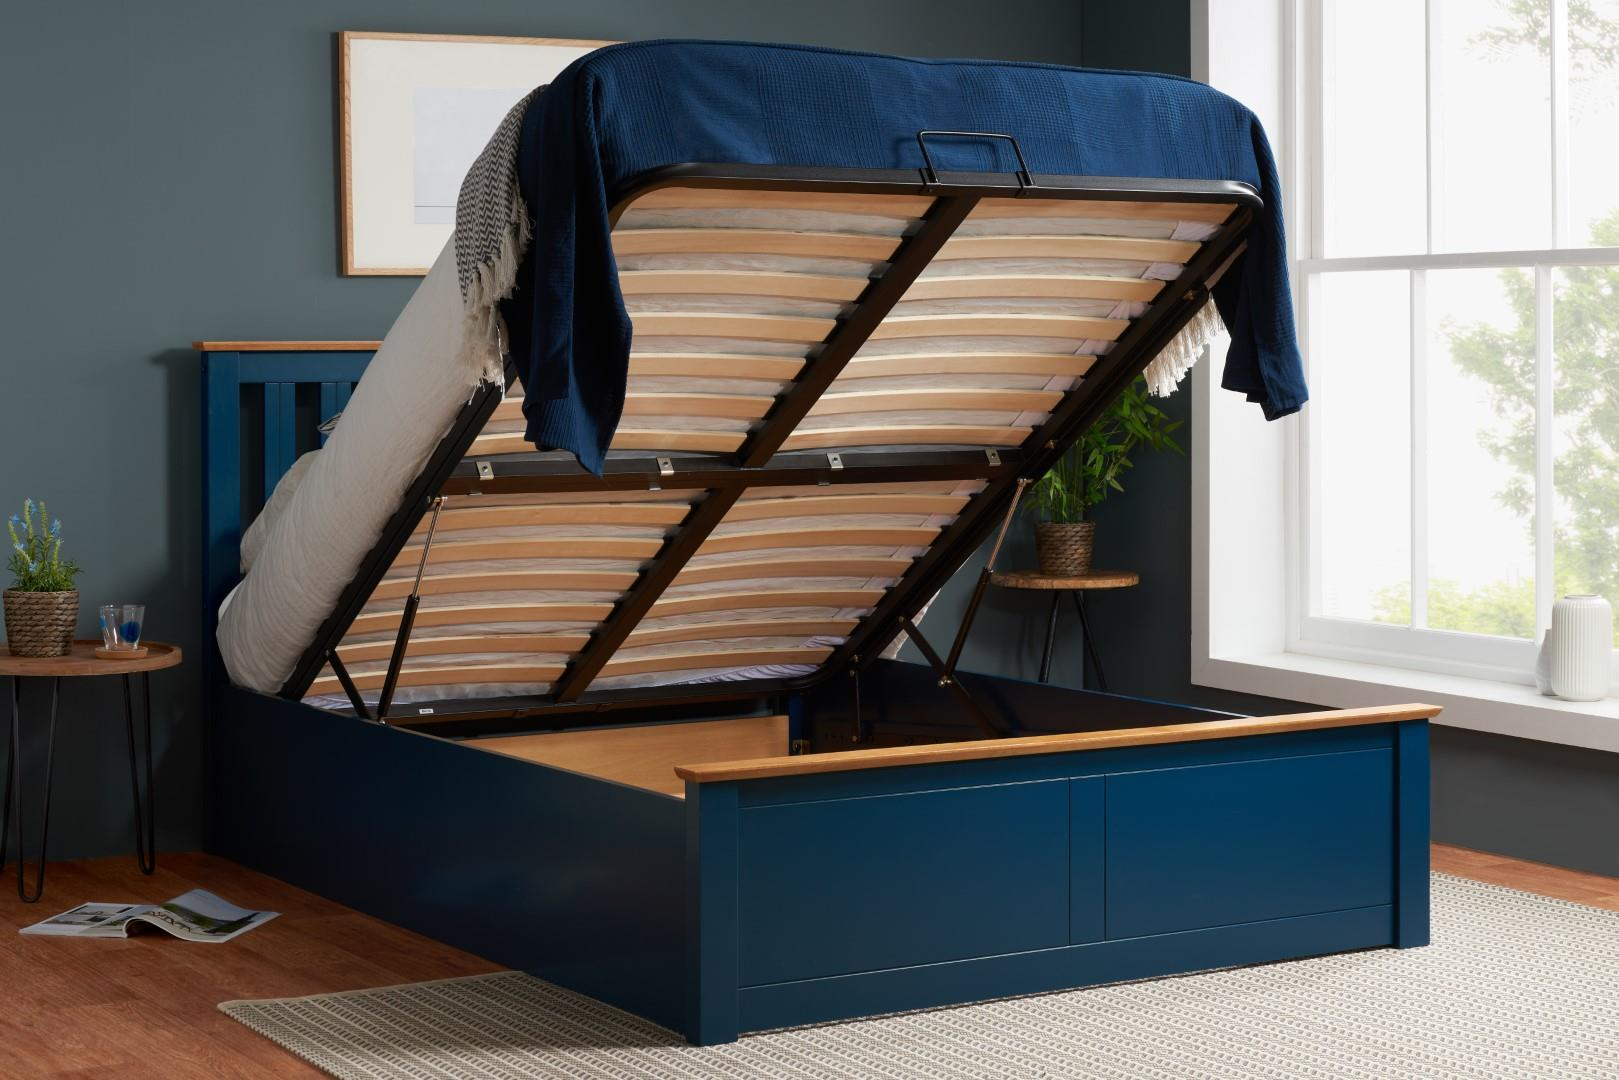 Phoenix Wood Ottoman Bed Frame Storage Small Double 4FT Navy Blue Oak Solid